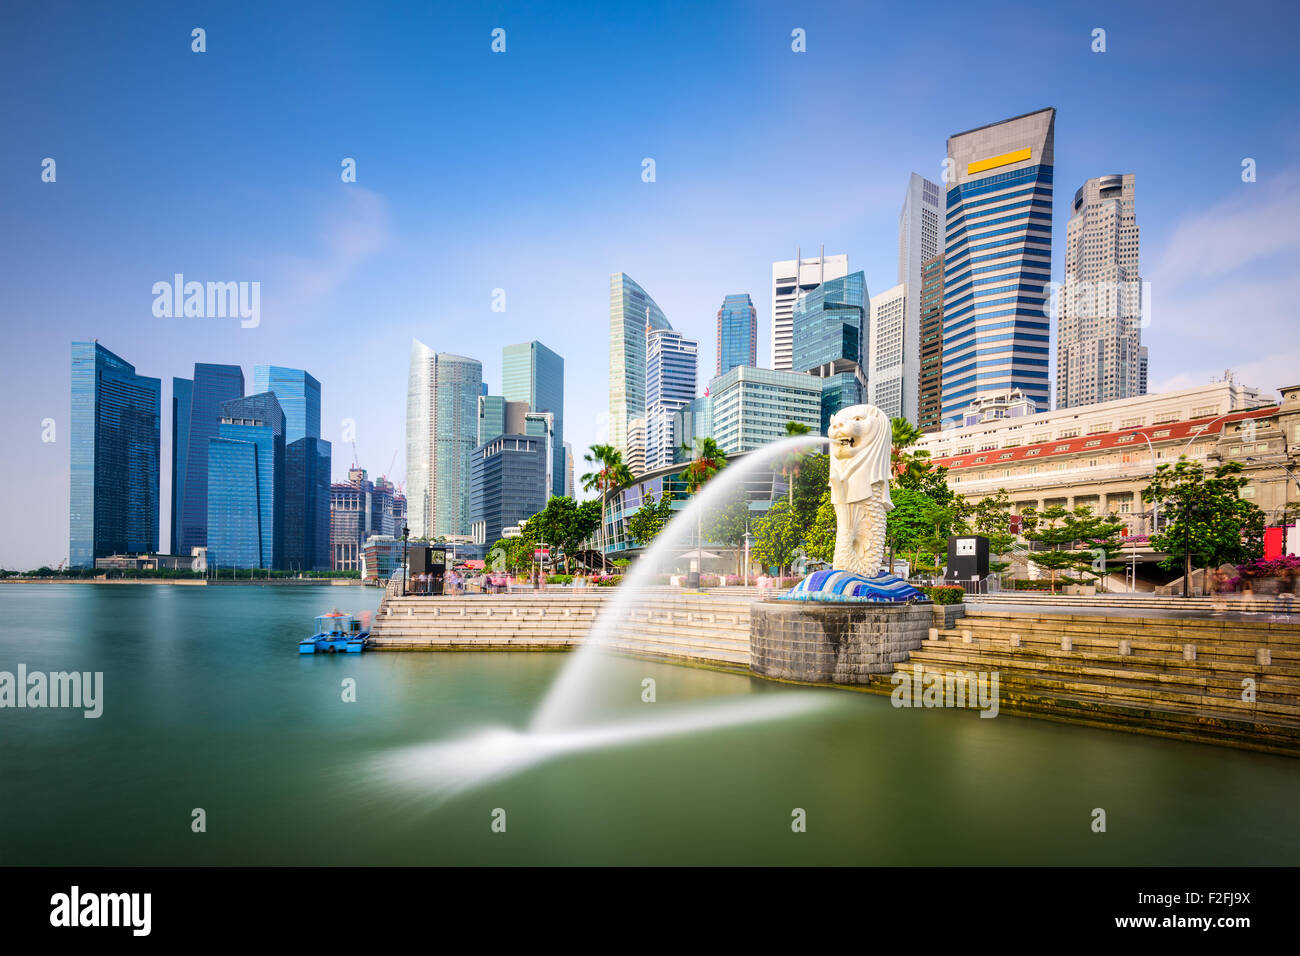 Skyline von Singapur am Merlion Brunnen. Stockbild